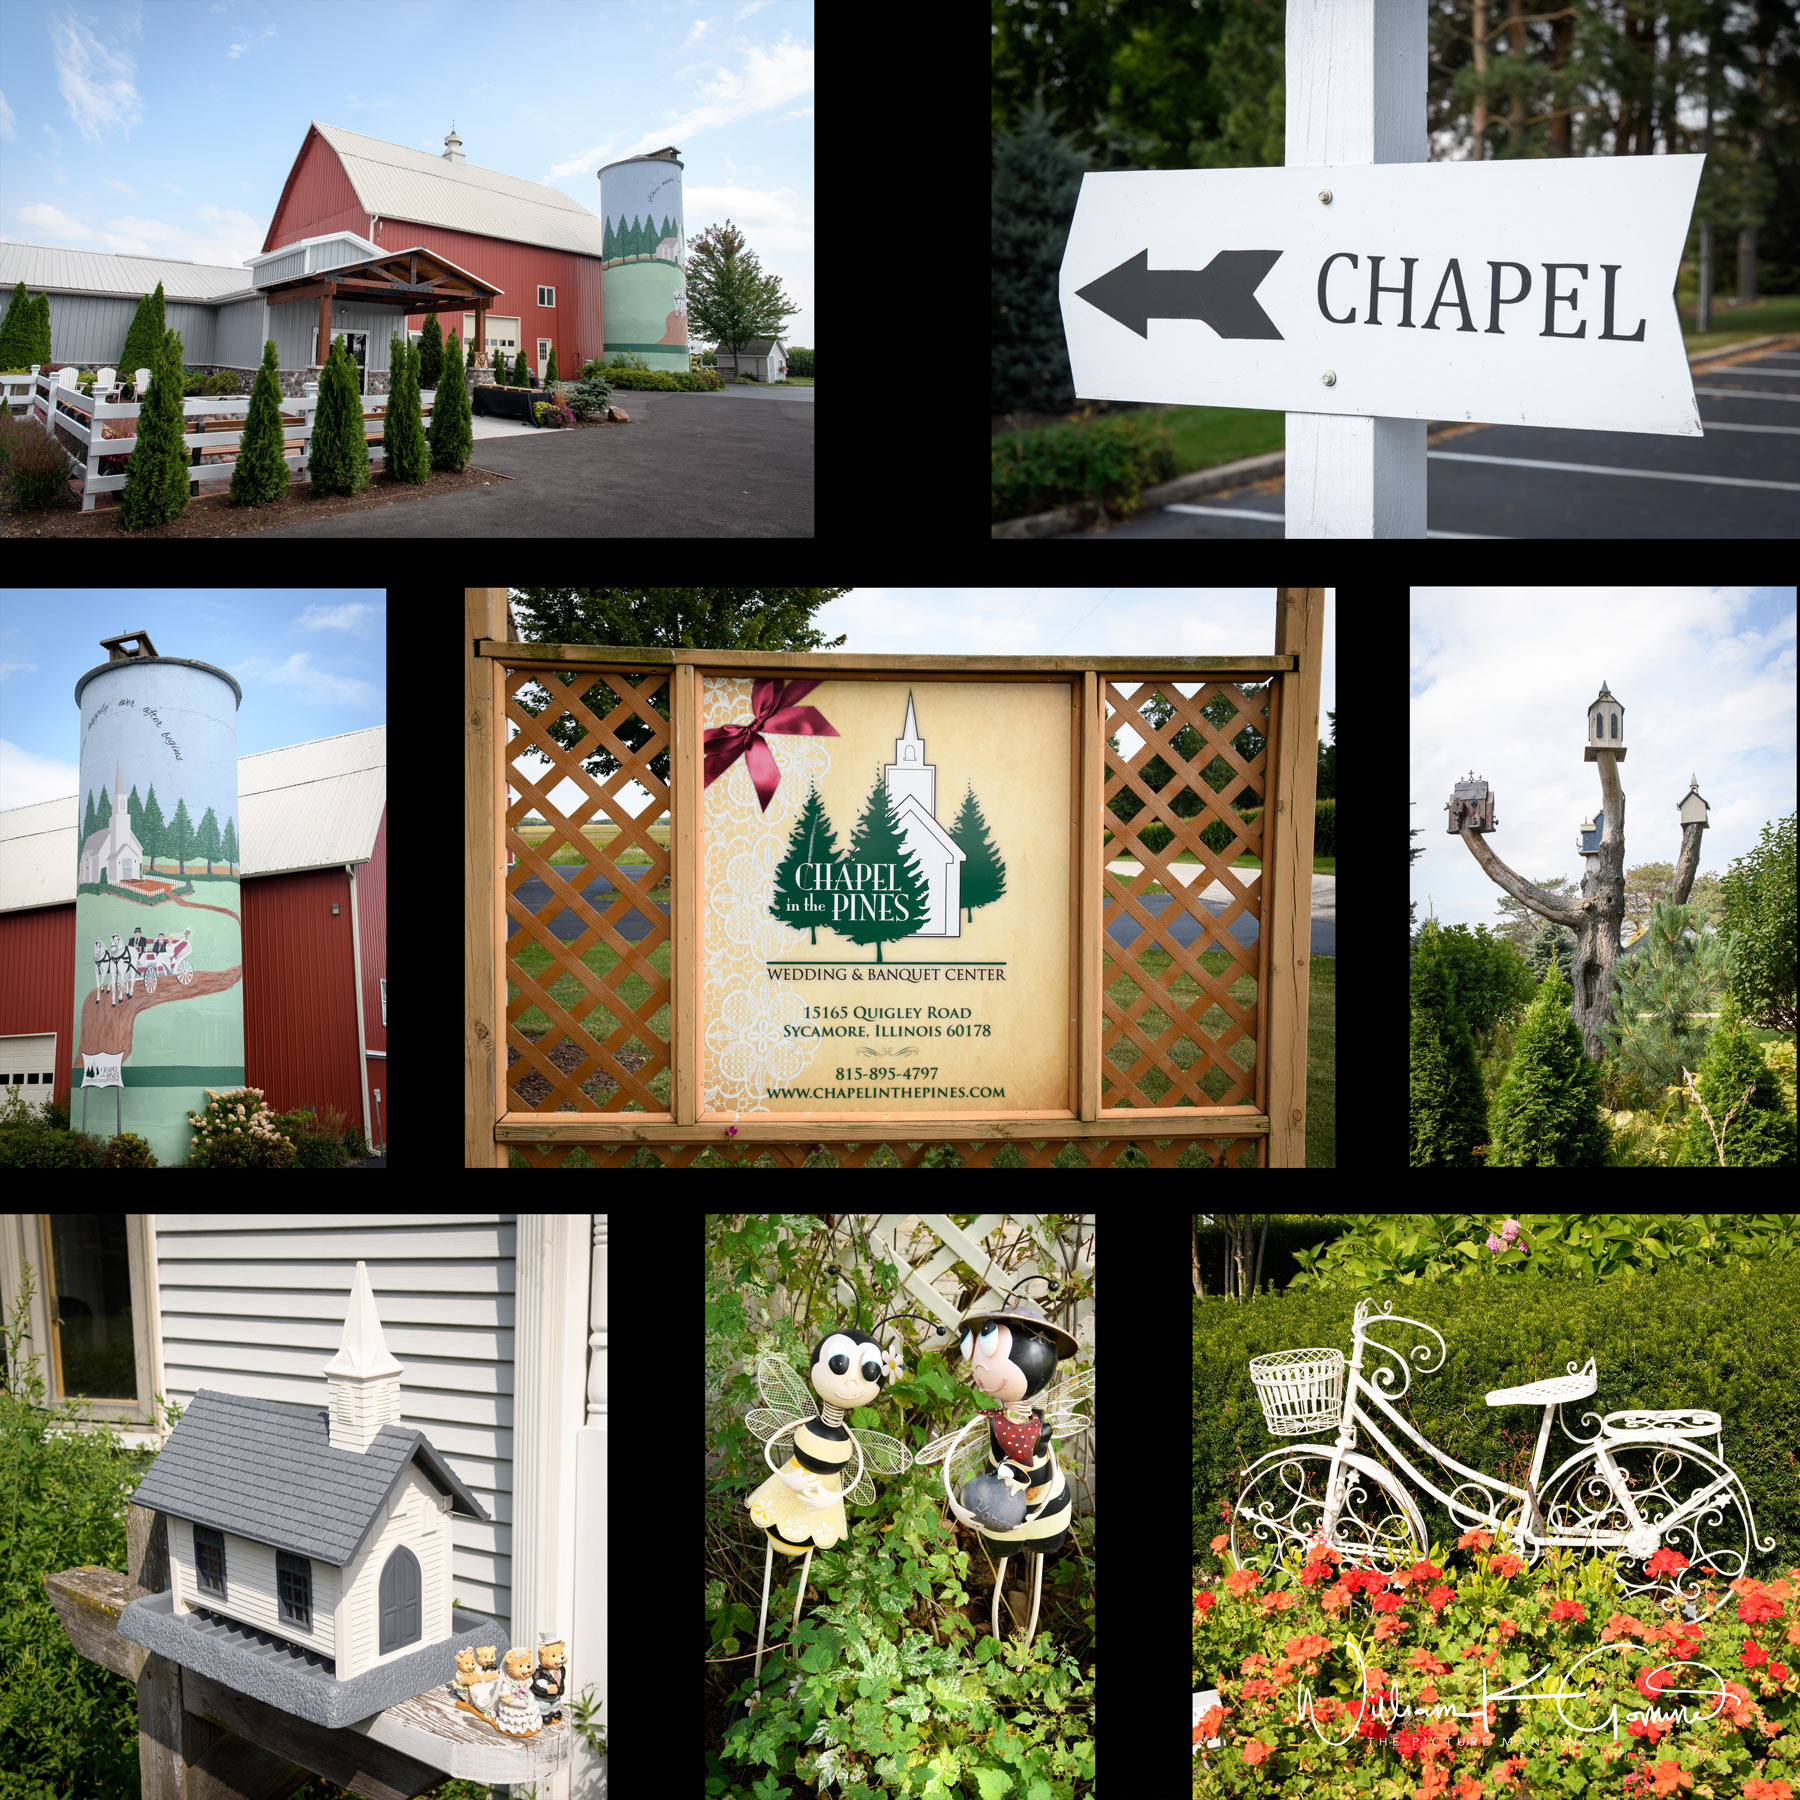 The buildings and grounds have great locations for portraits and many whimsical items throughout the area.